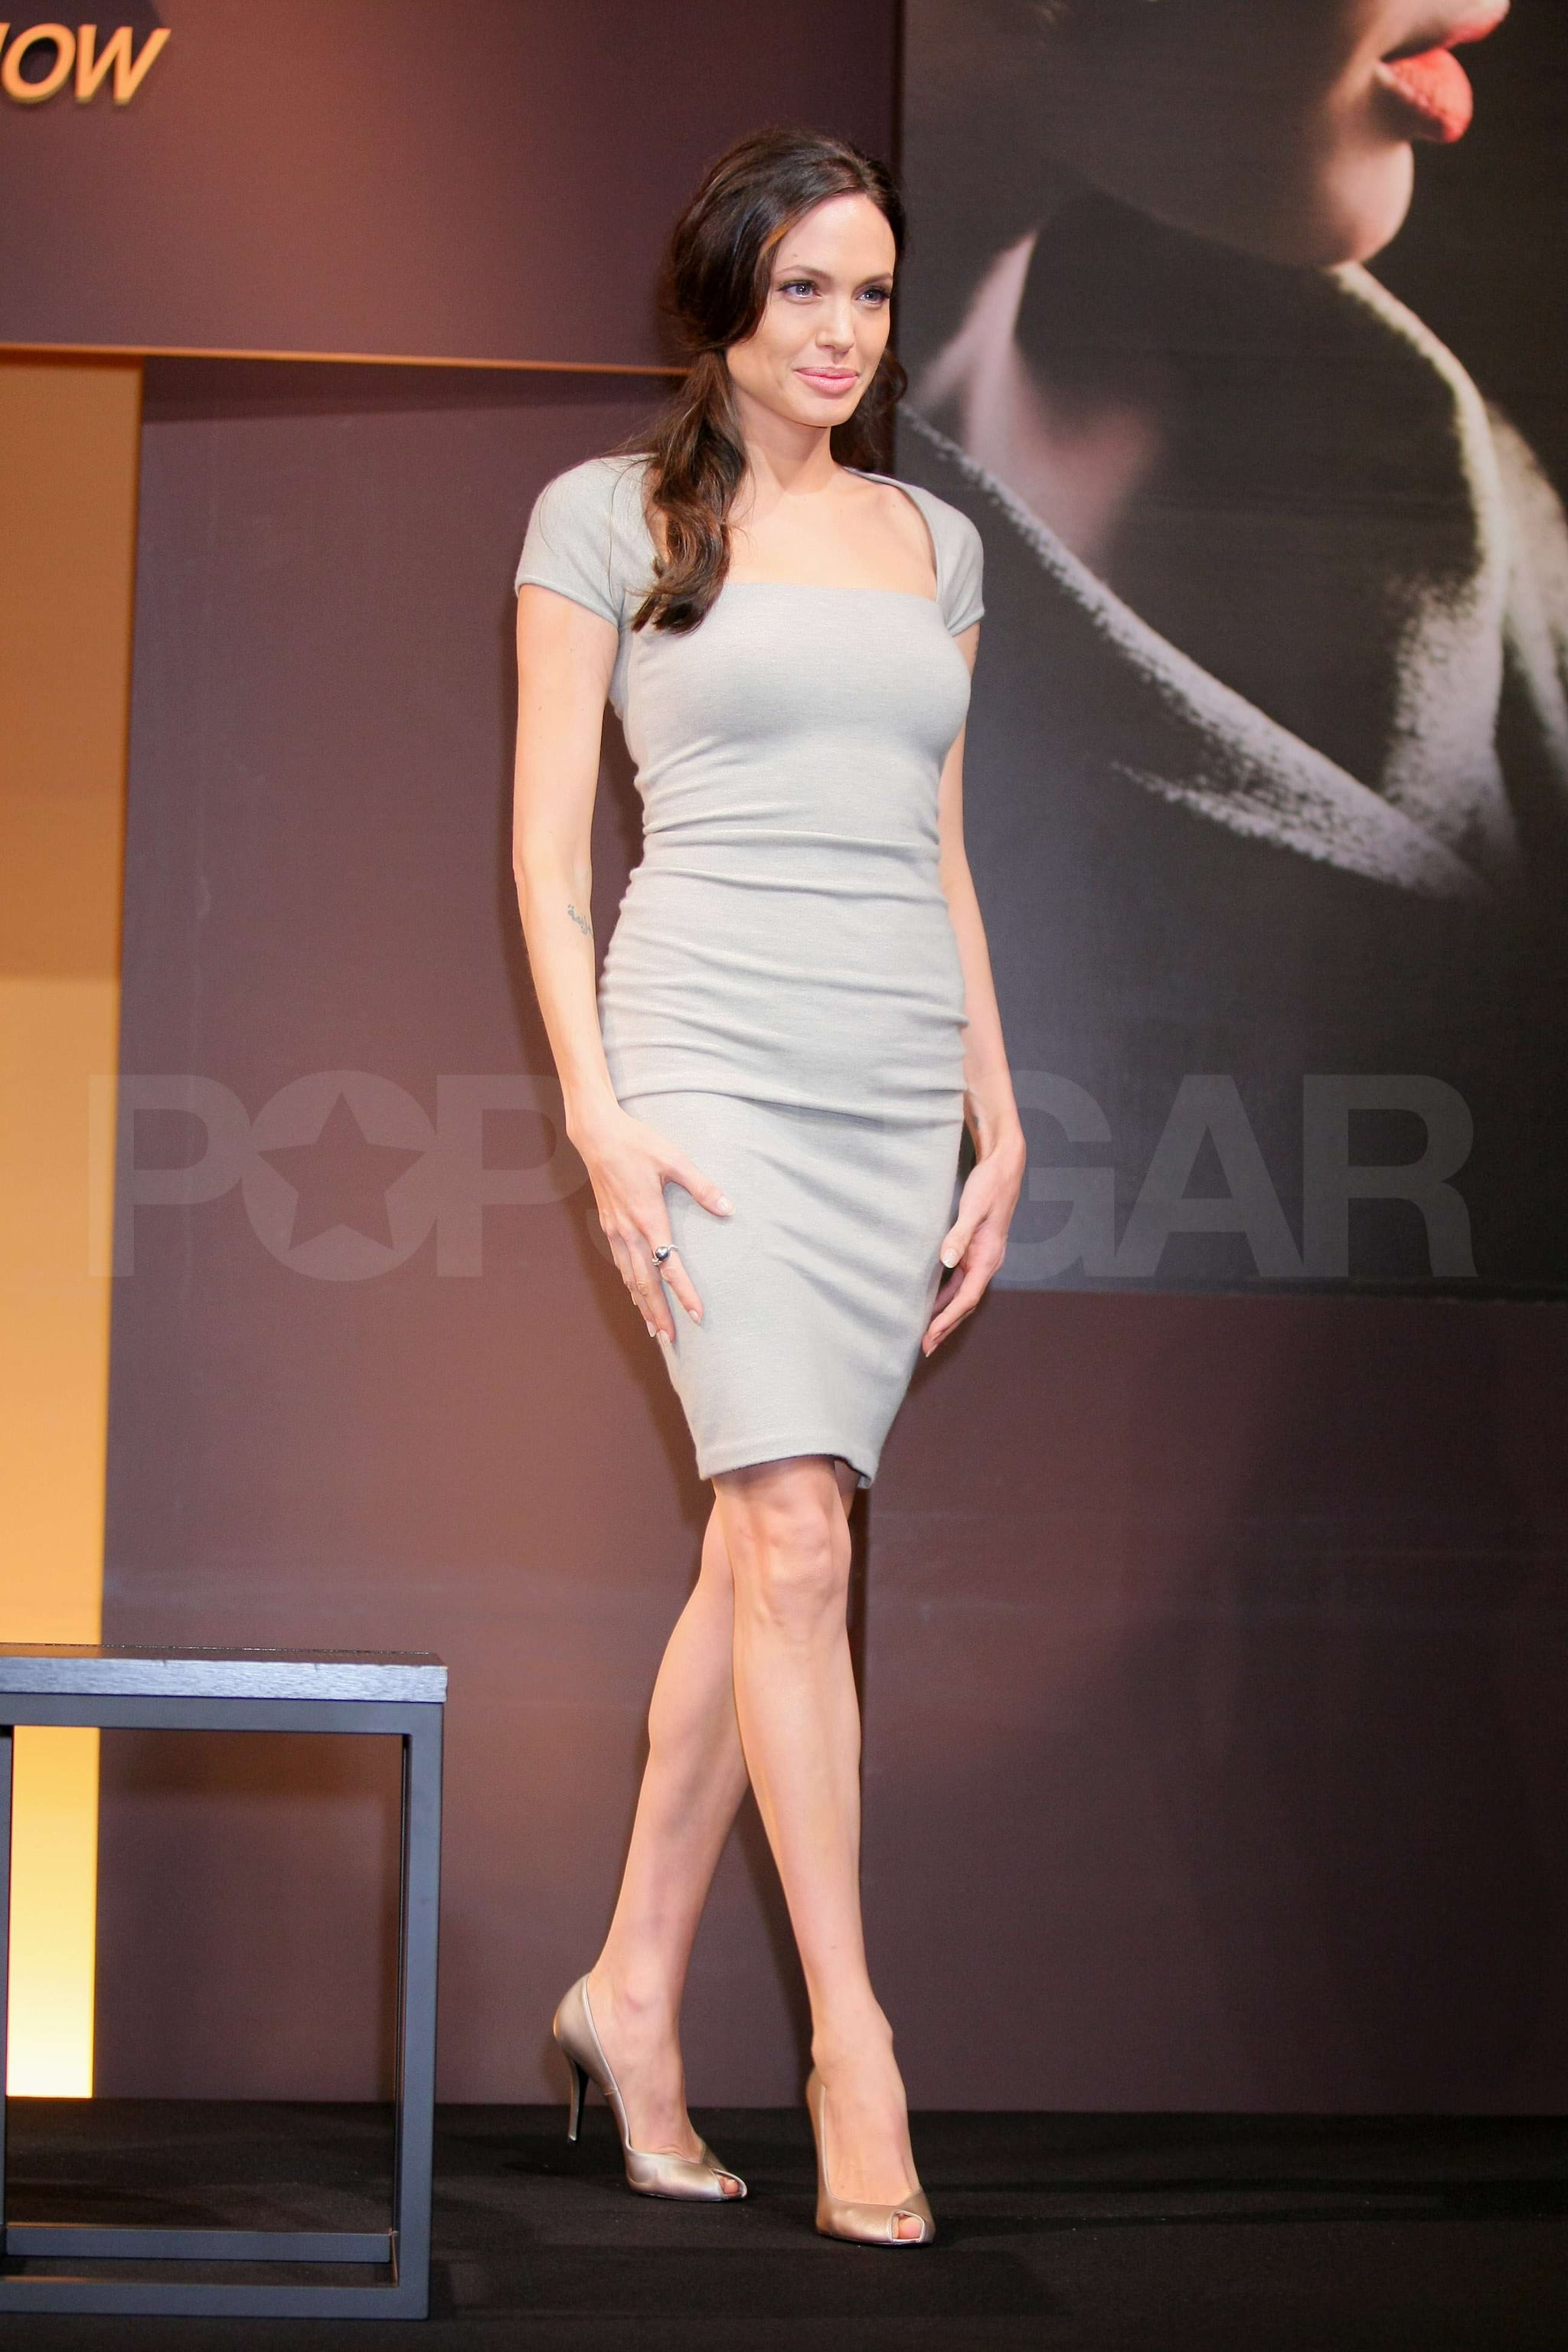 Photos of Angelina Jolie Promoting Changeling in Tokyo ... анджелина джоли